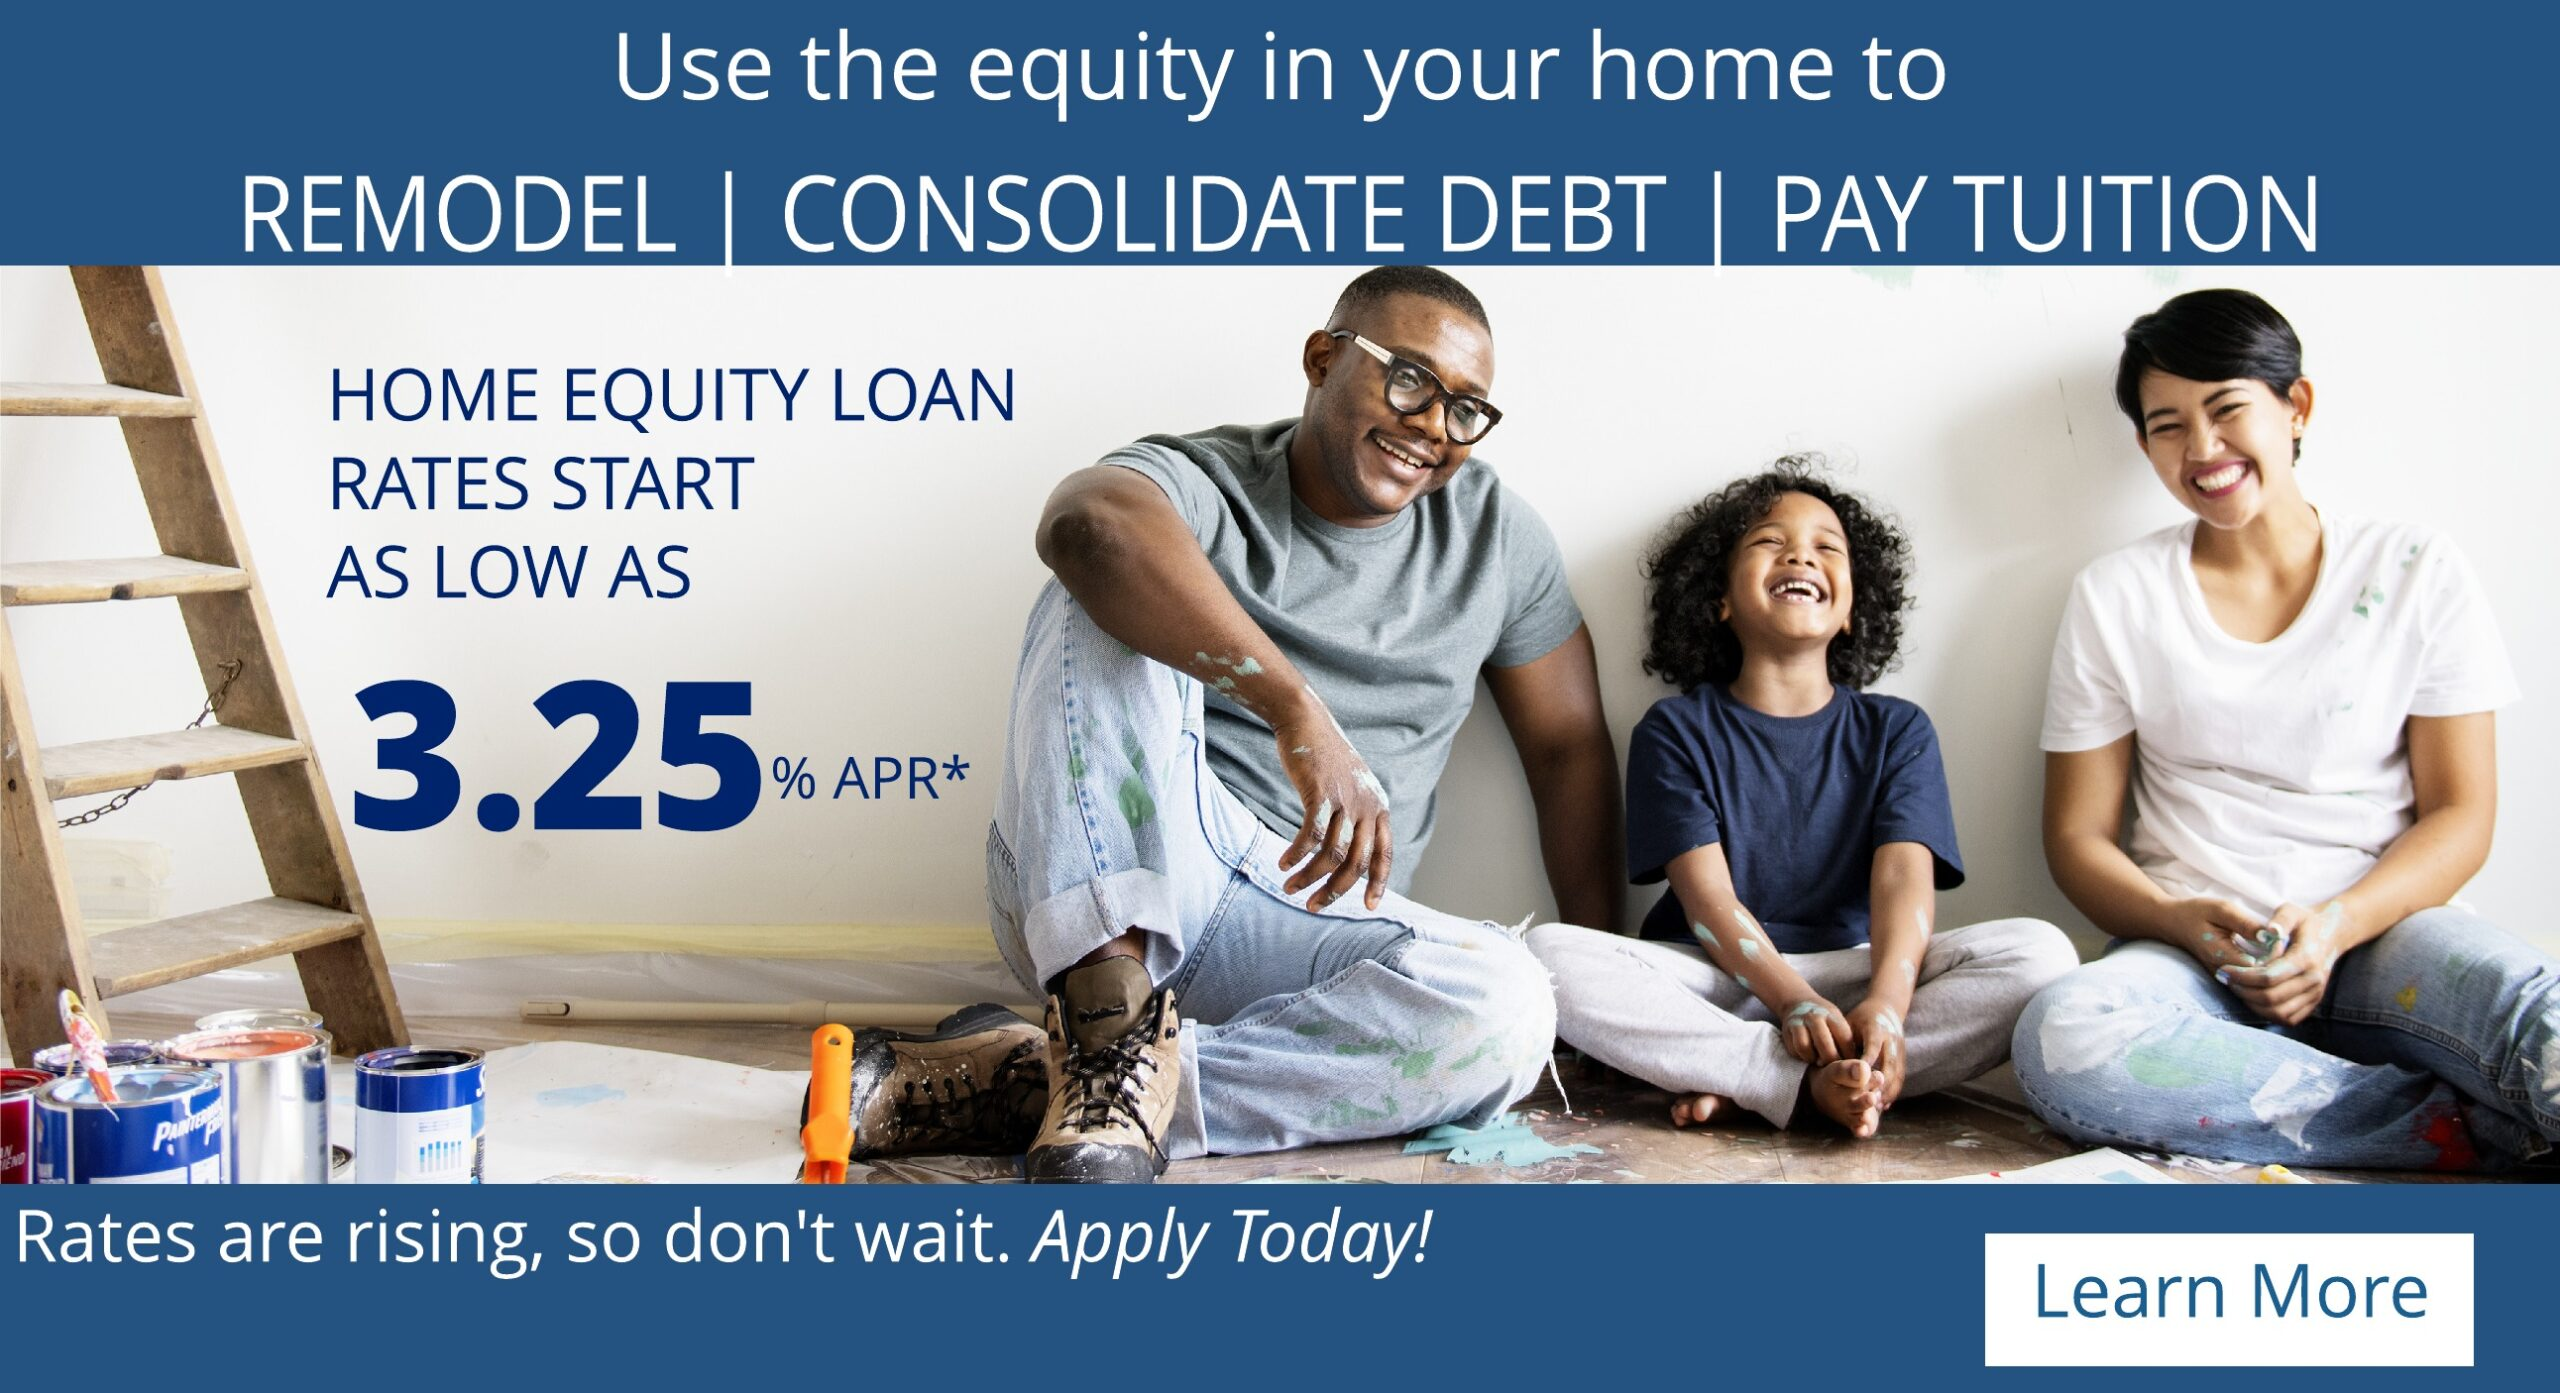 Home equity loan special 3.25%